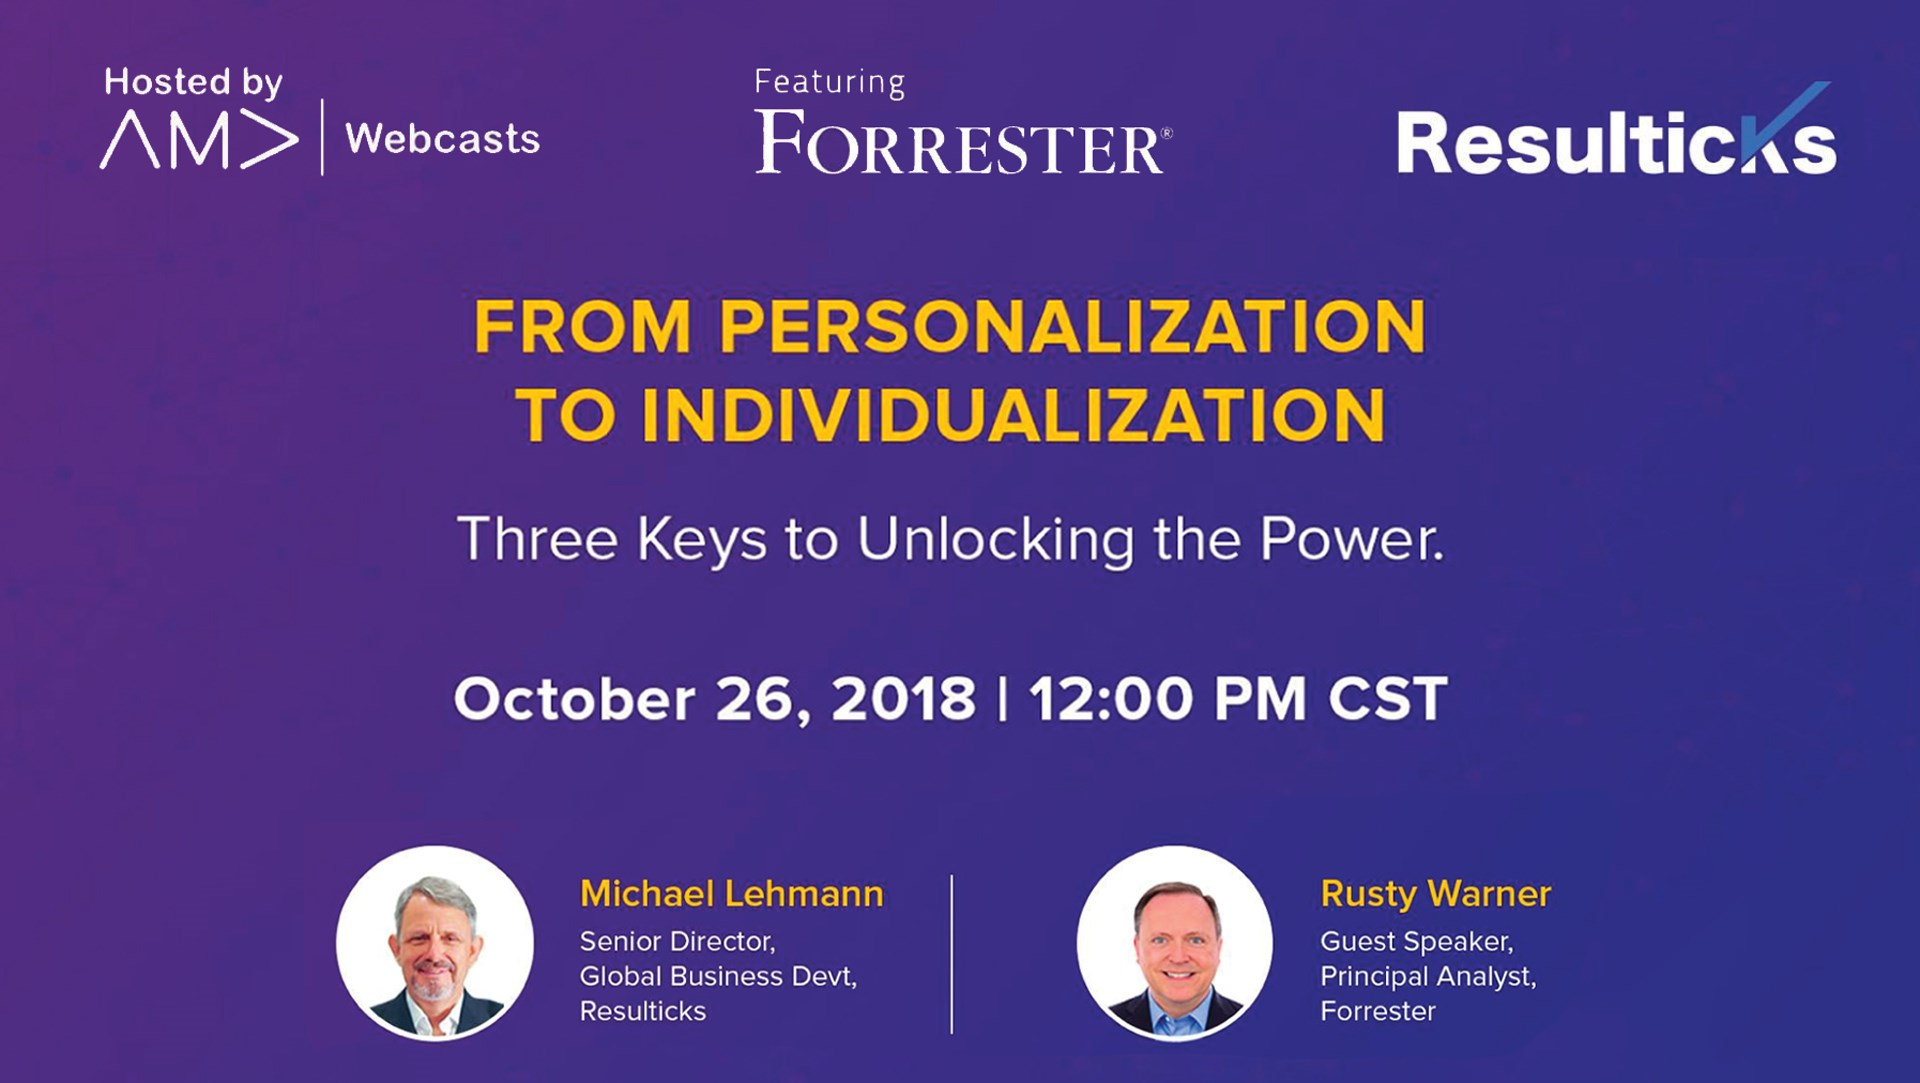 From personalization to individualization: Three keys to unlocking the power